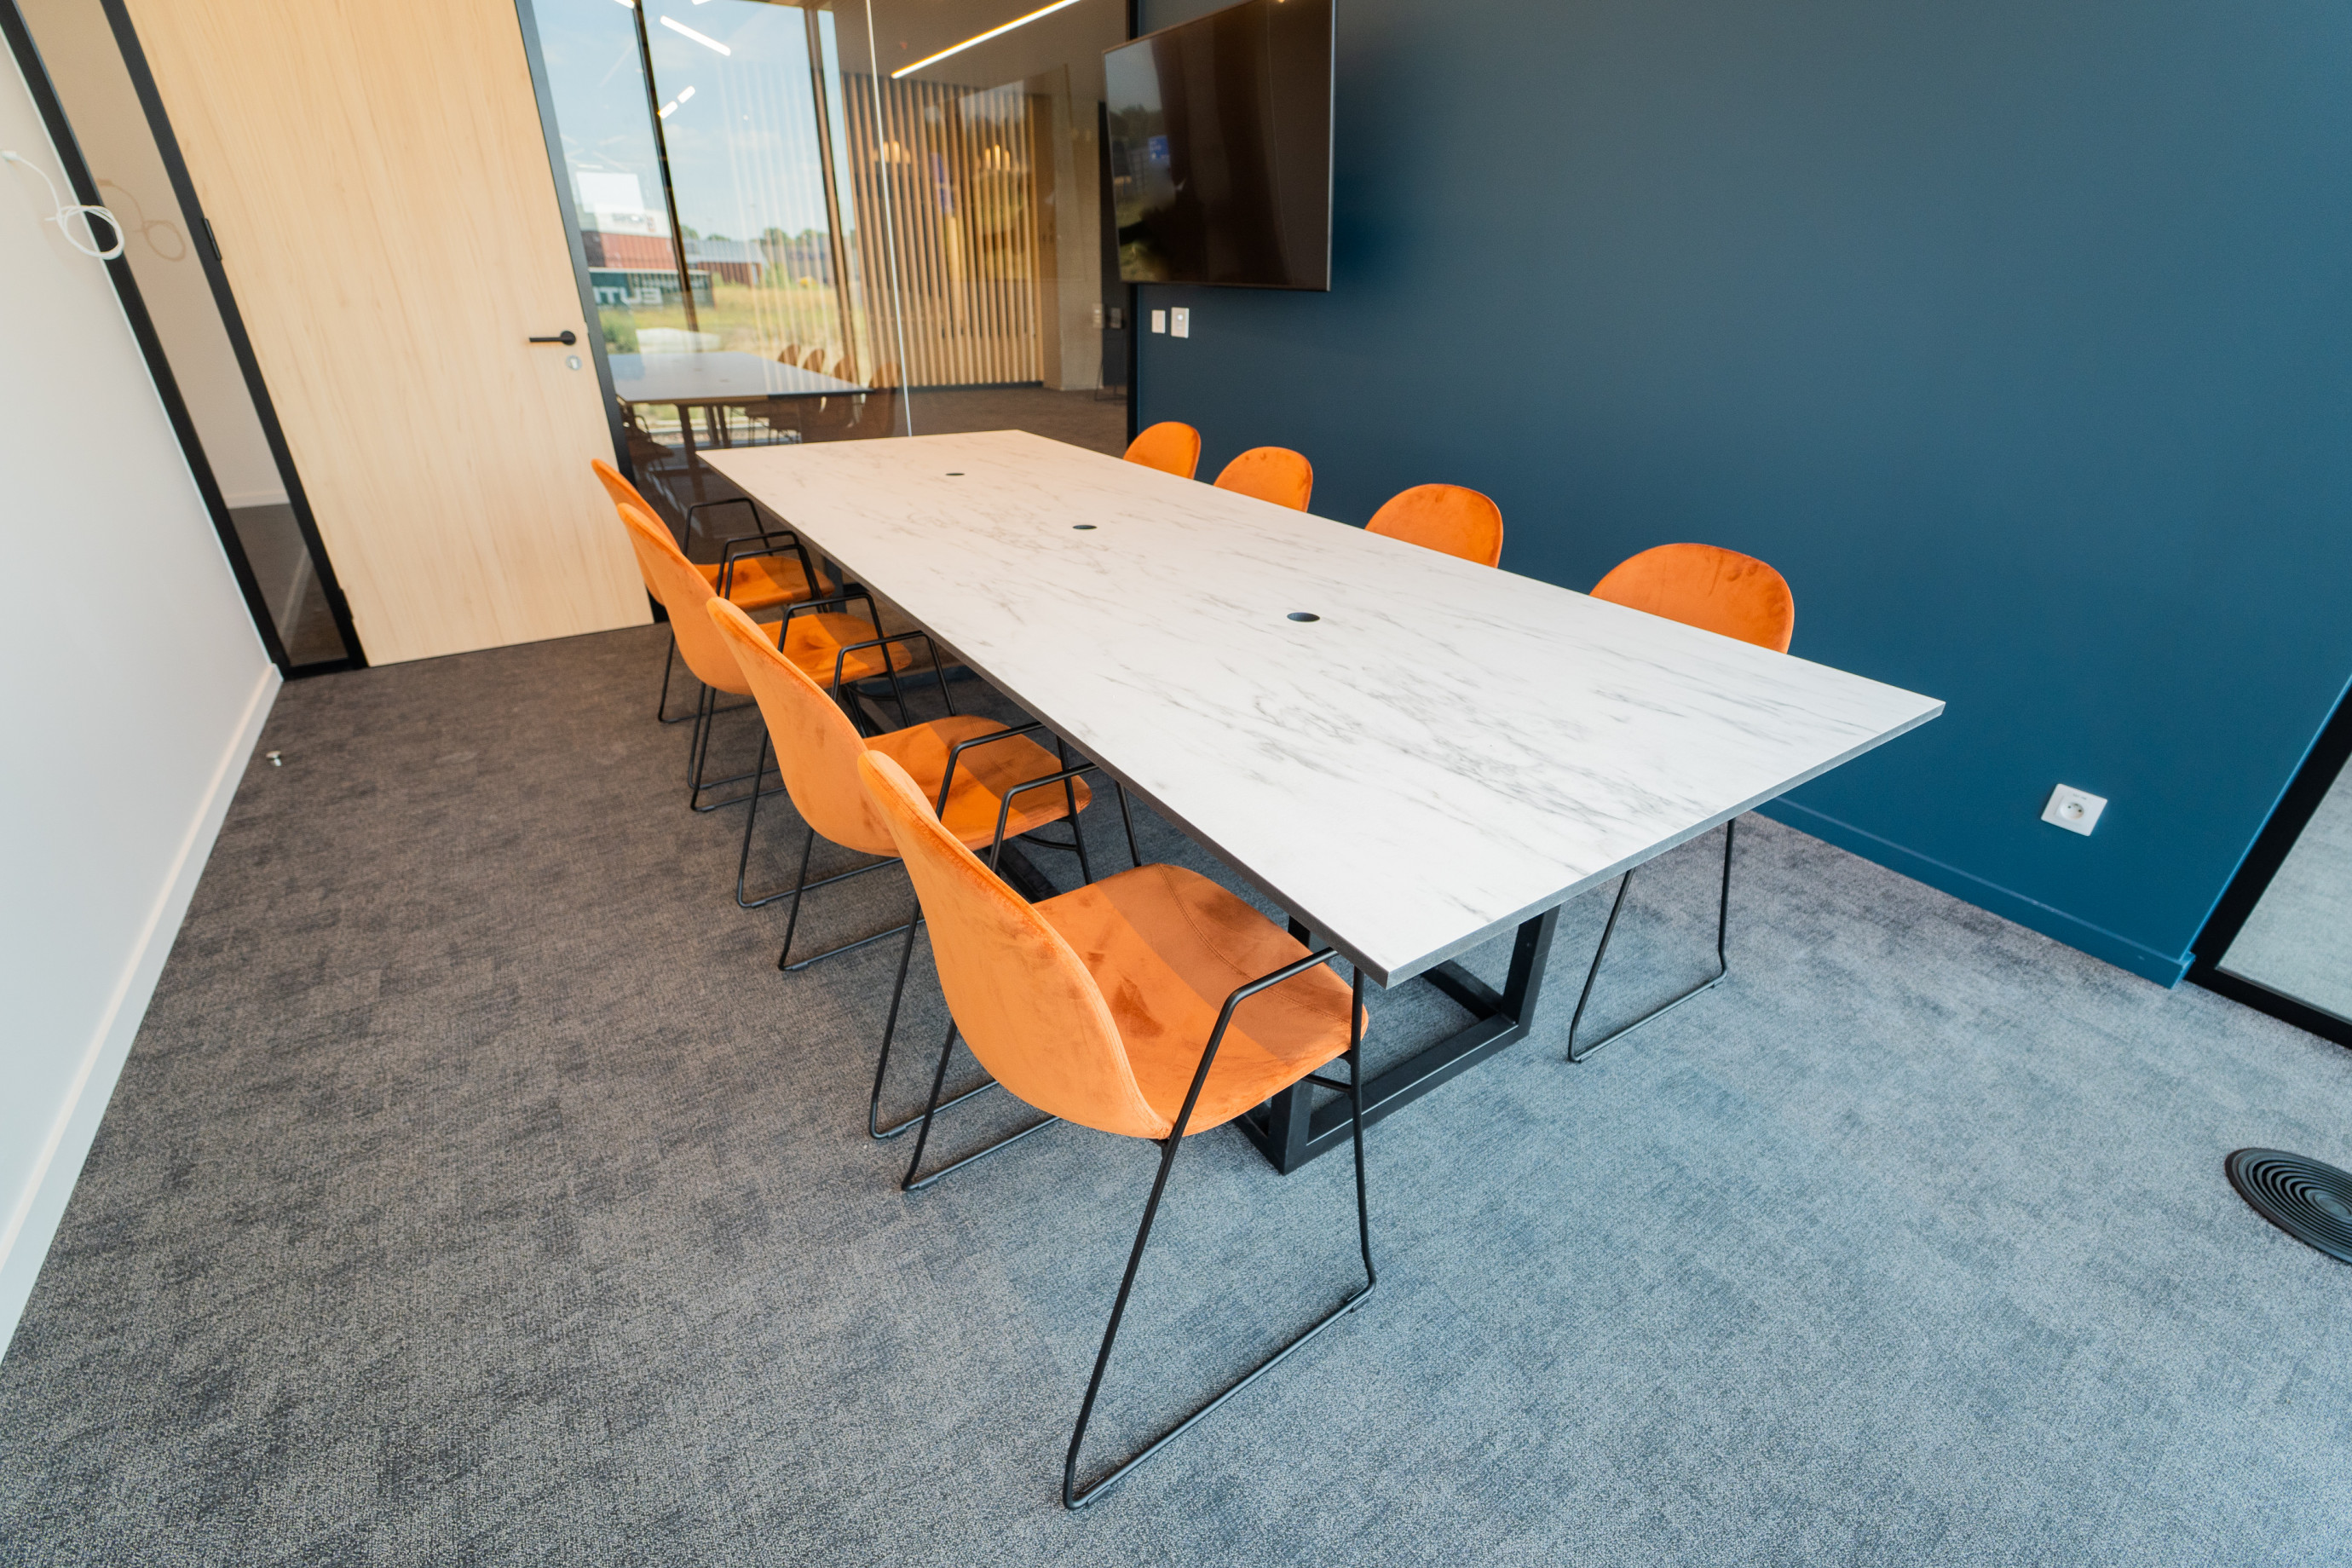 Office furniture: meeting table